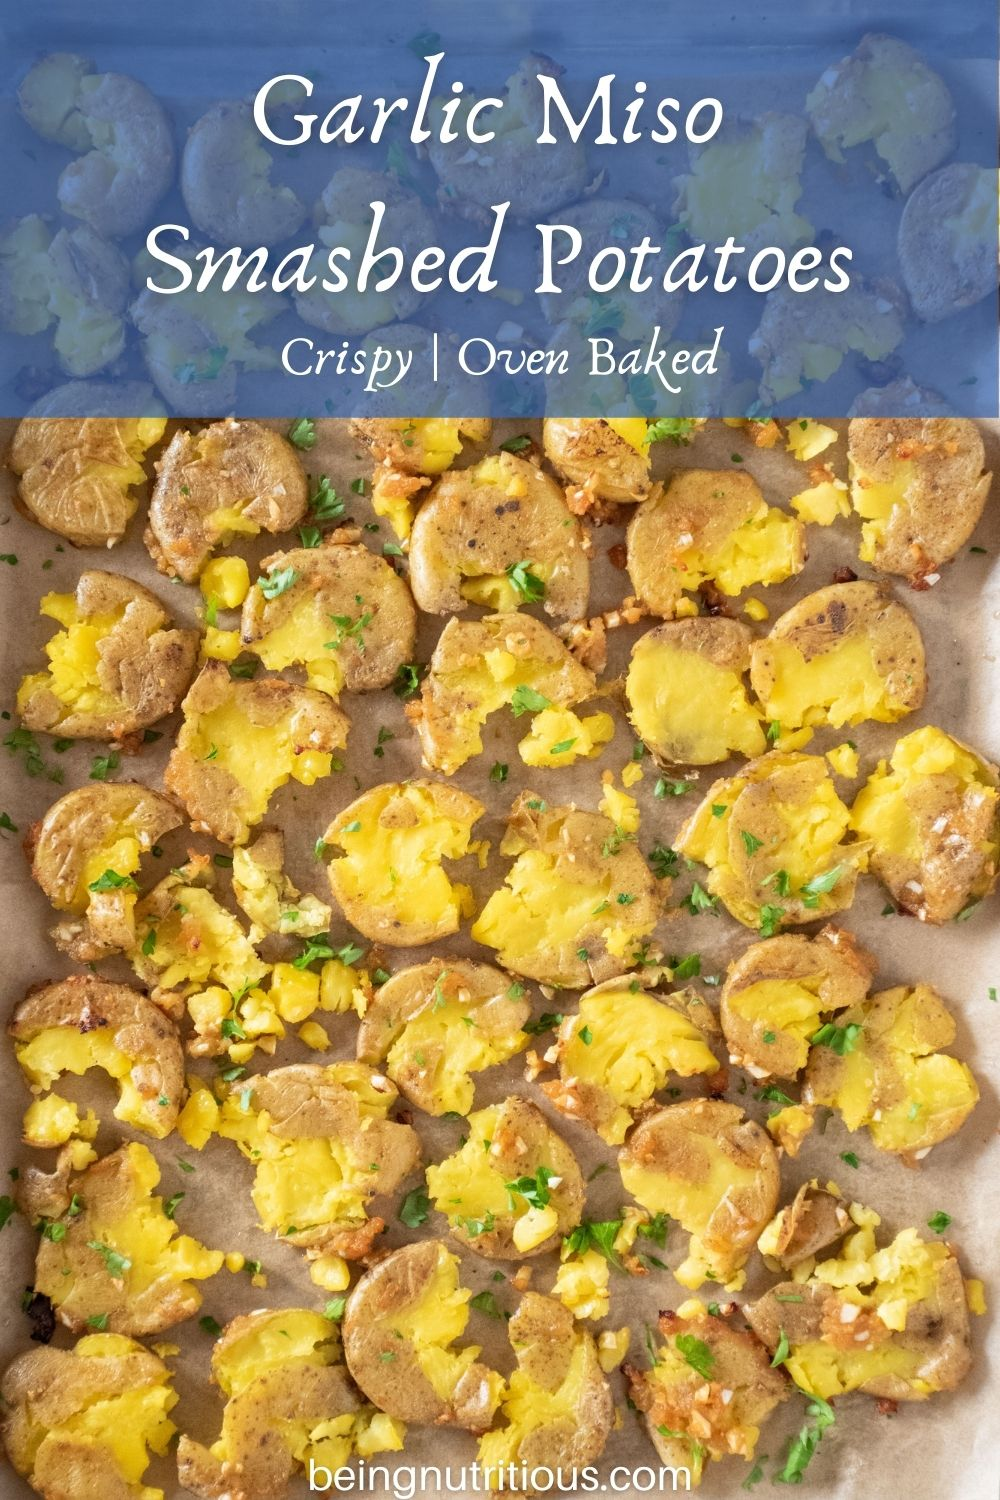 Overhead picture of smashed potatoes on a baking sheet. Text overlay: Garlic Miso Smashed Potatoes; crispy, oven baked.